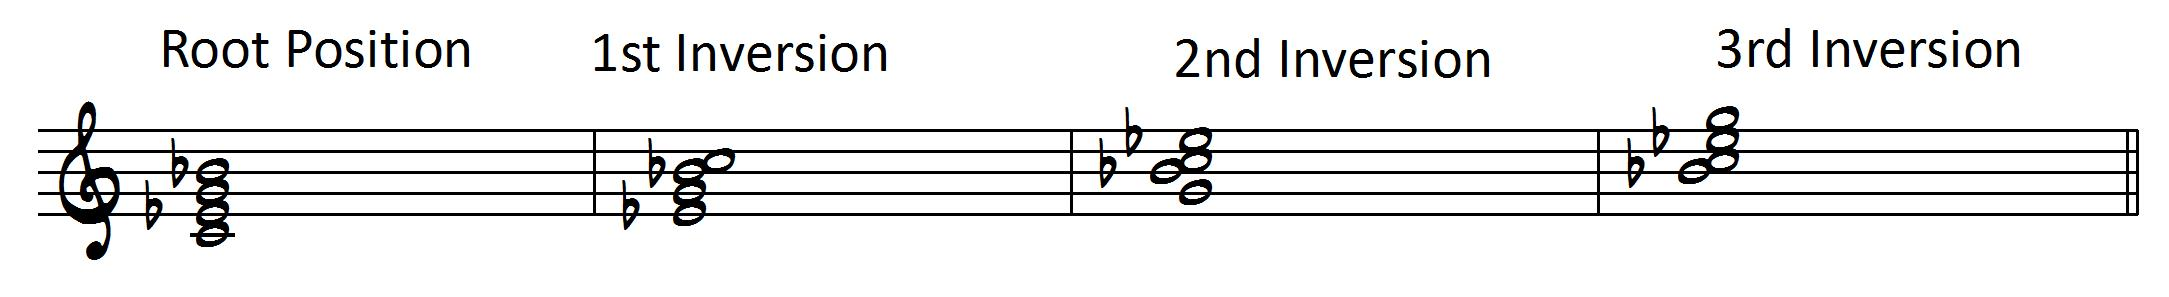 How to Play 7th Chords Like a Pro - Learn Jazz Standards